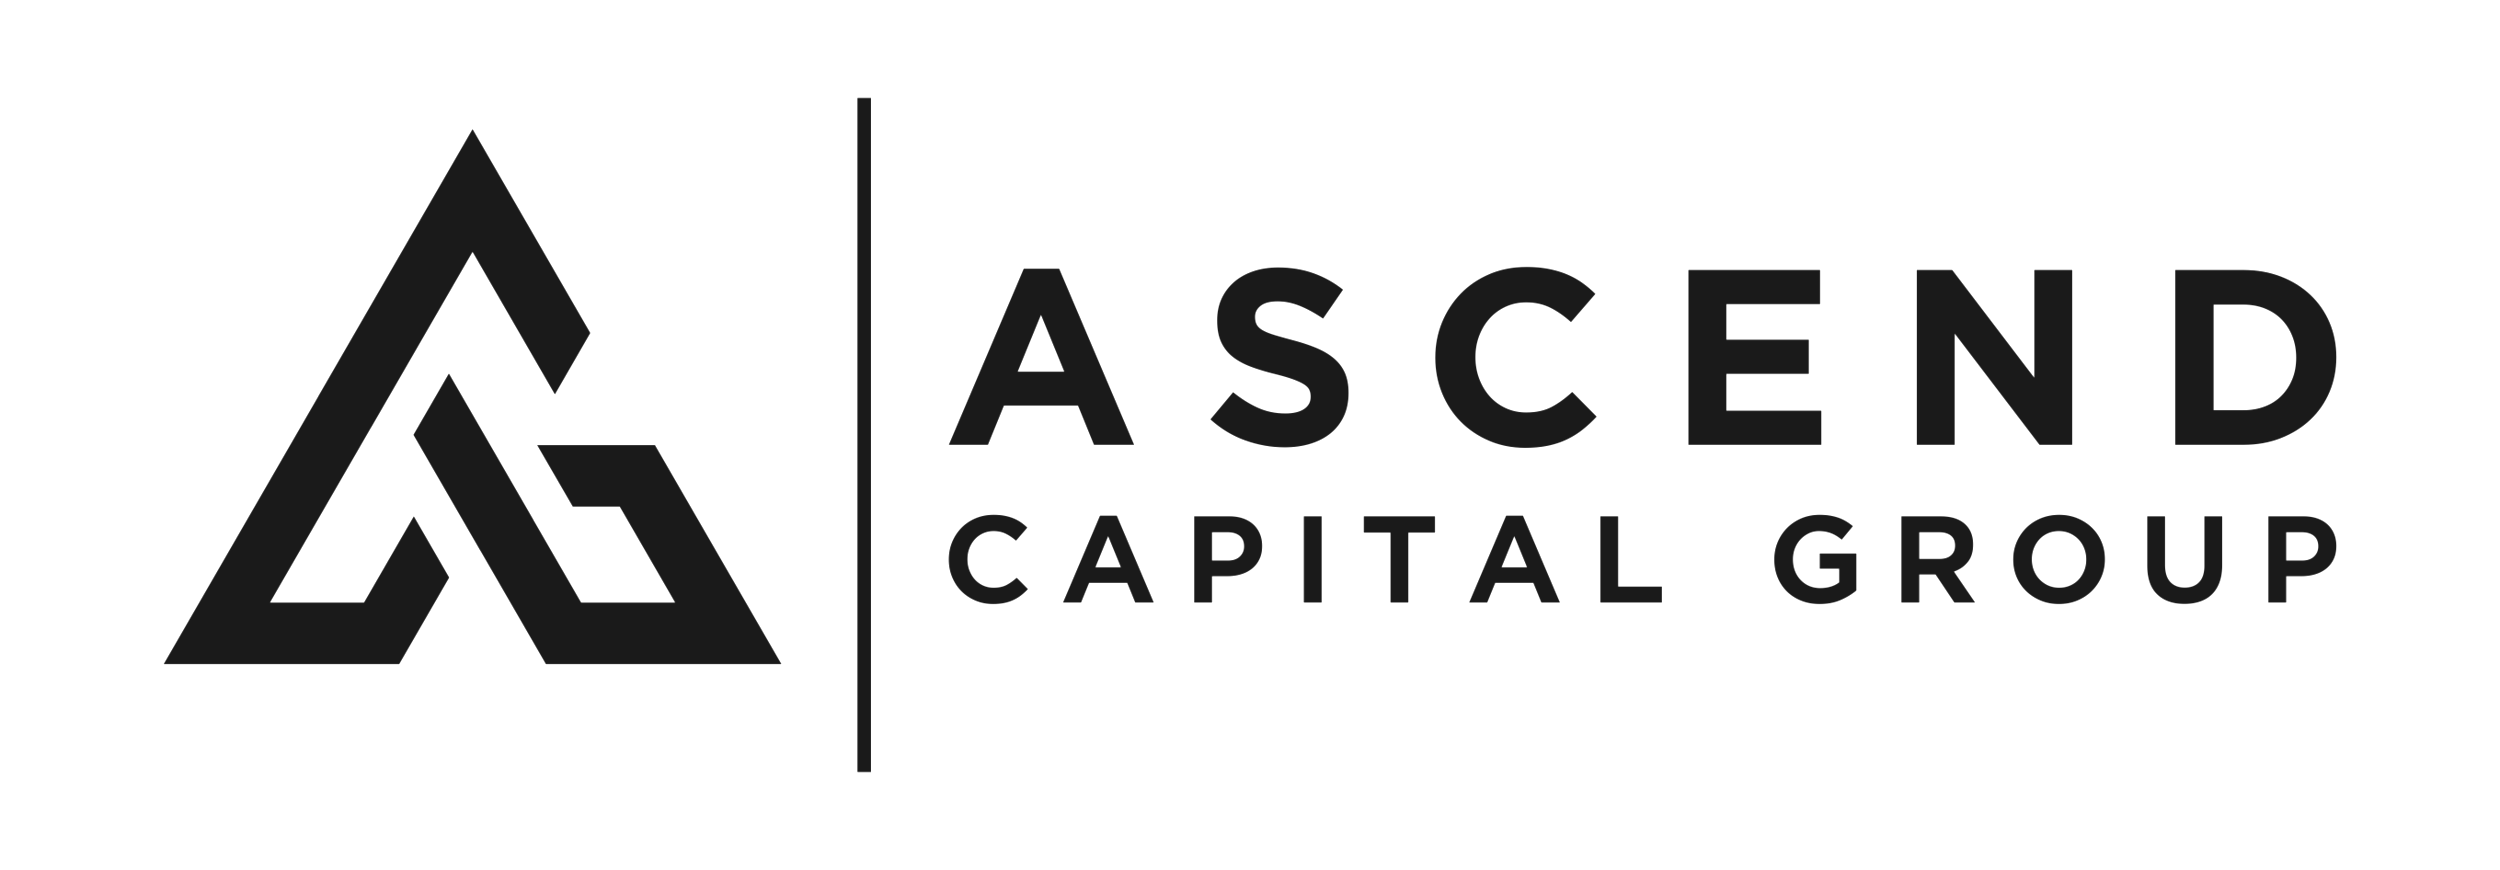 Ascend Capital Group horizontal black.png